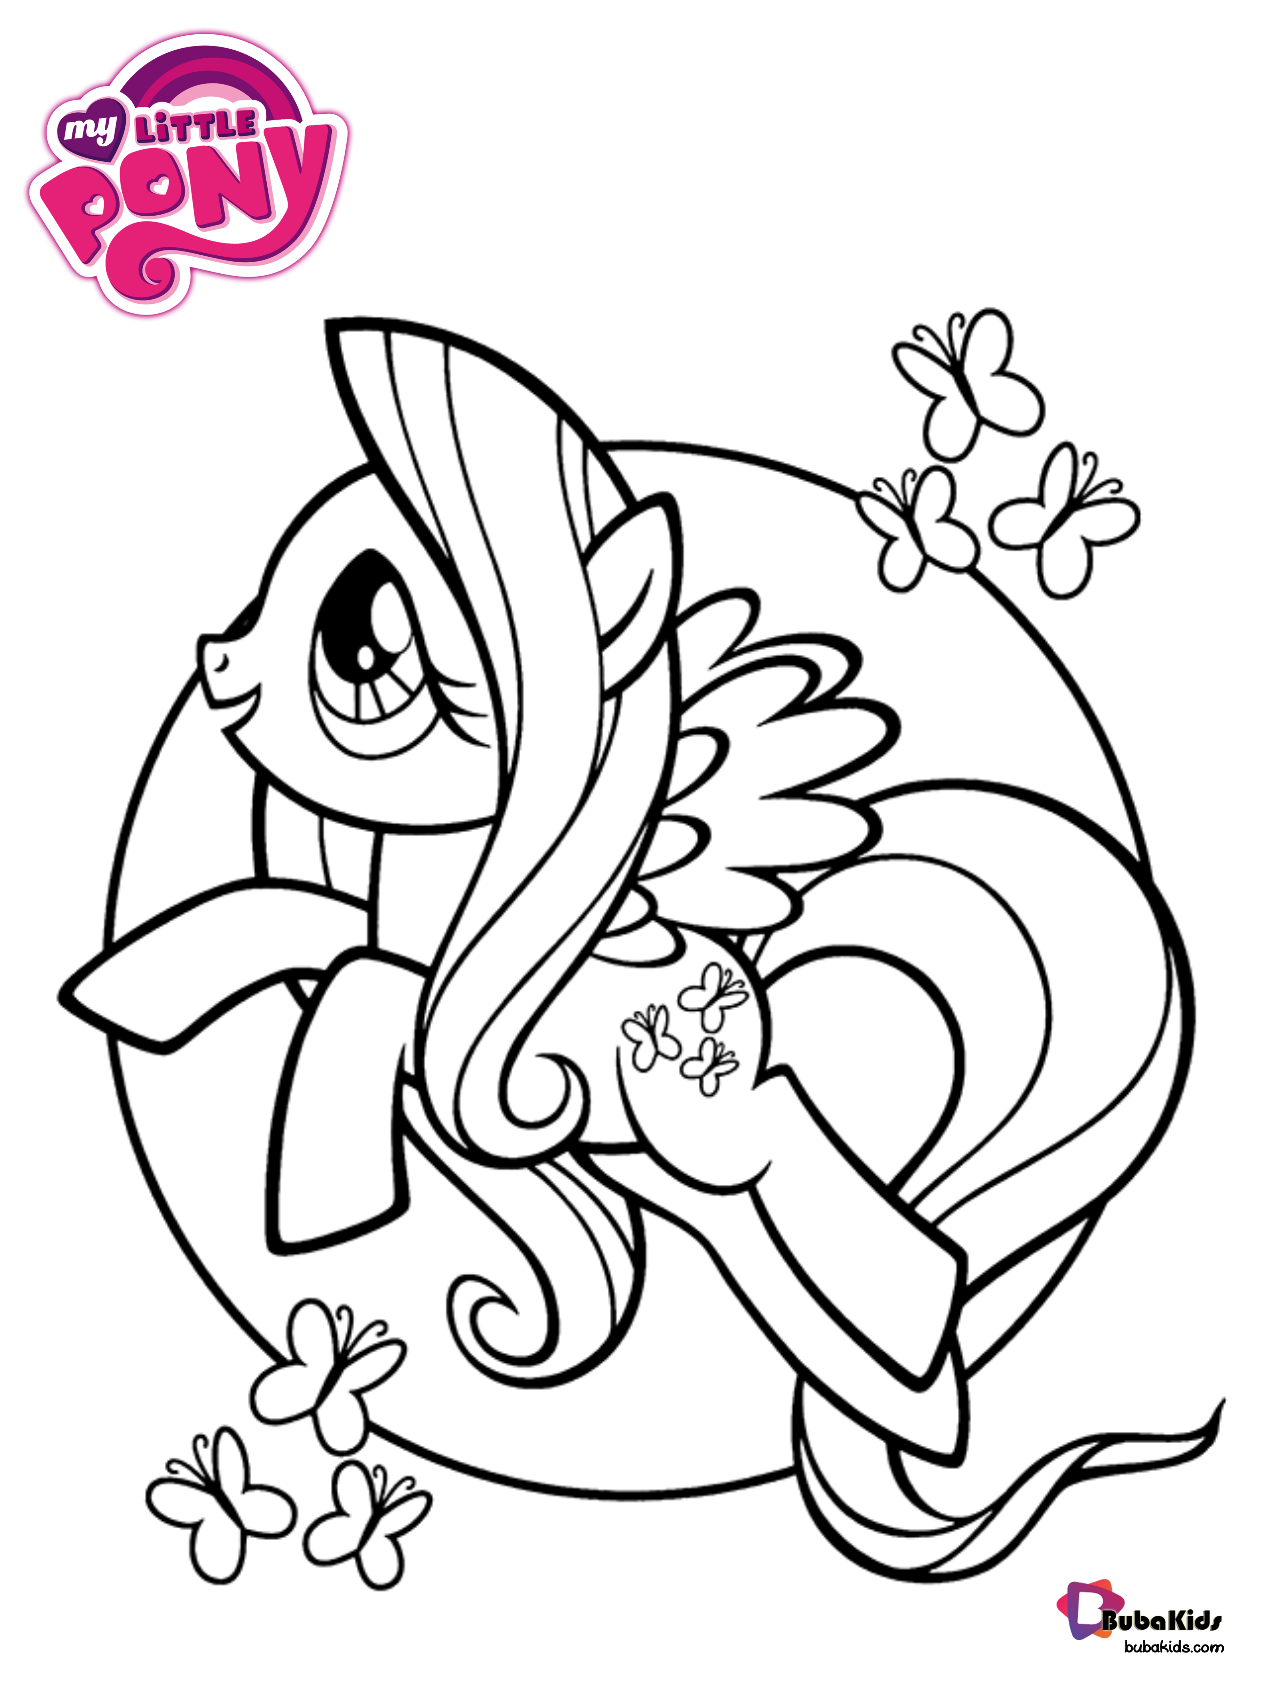 Butterflies And My Little Pony Coloring Page Tinkerbell